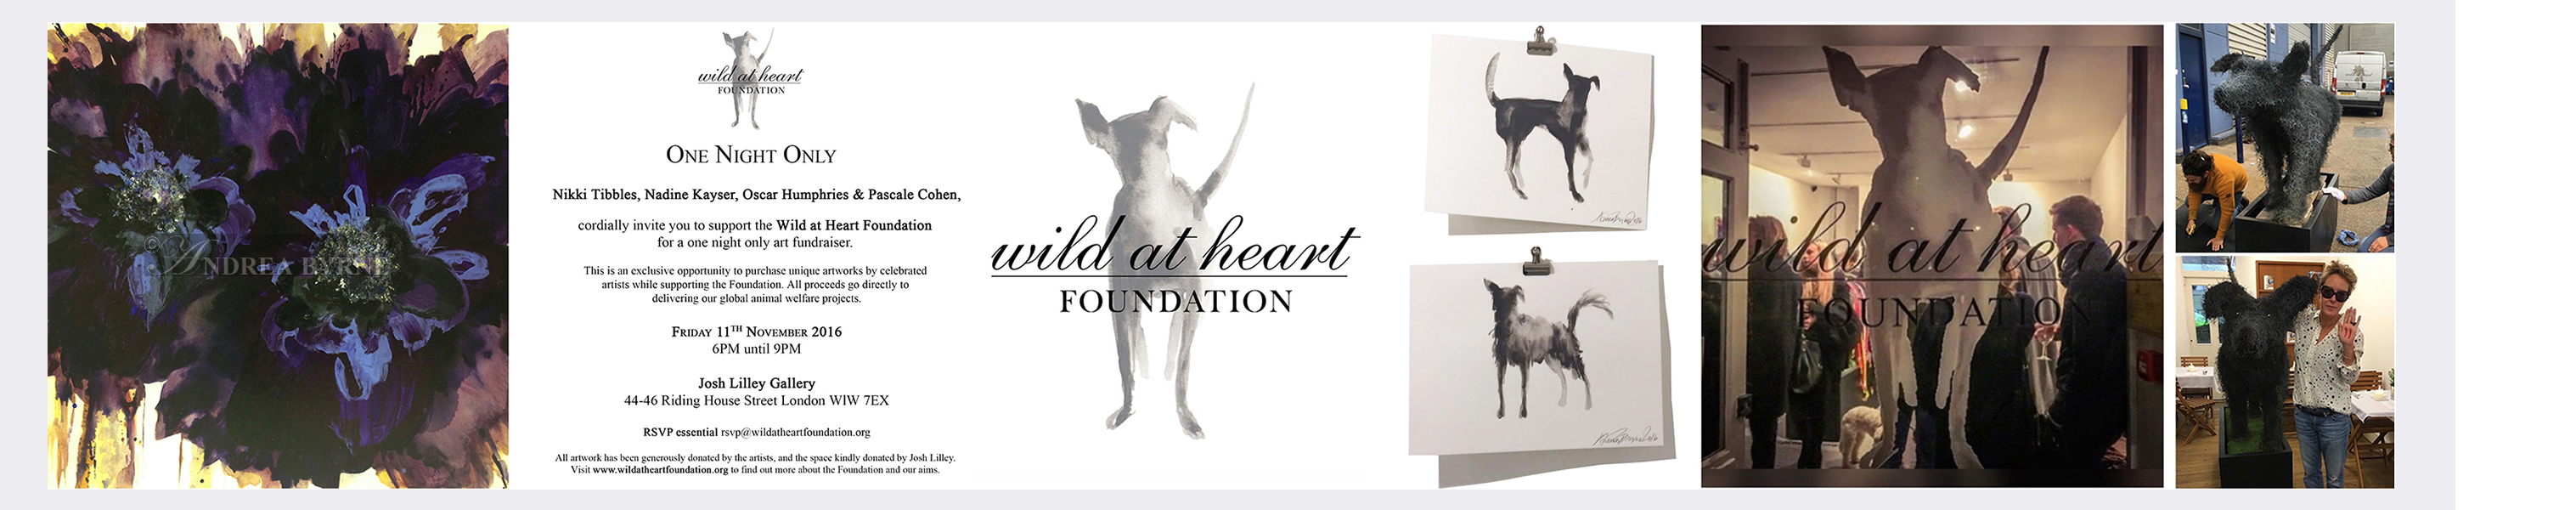 'Bluebluebloom' and 'logo dogs' donated to the Wild At Heart Foundation - Josh Lilley Gallery London (2016)